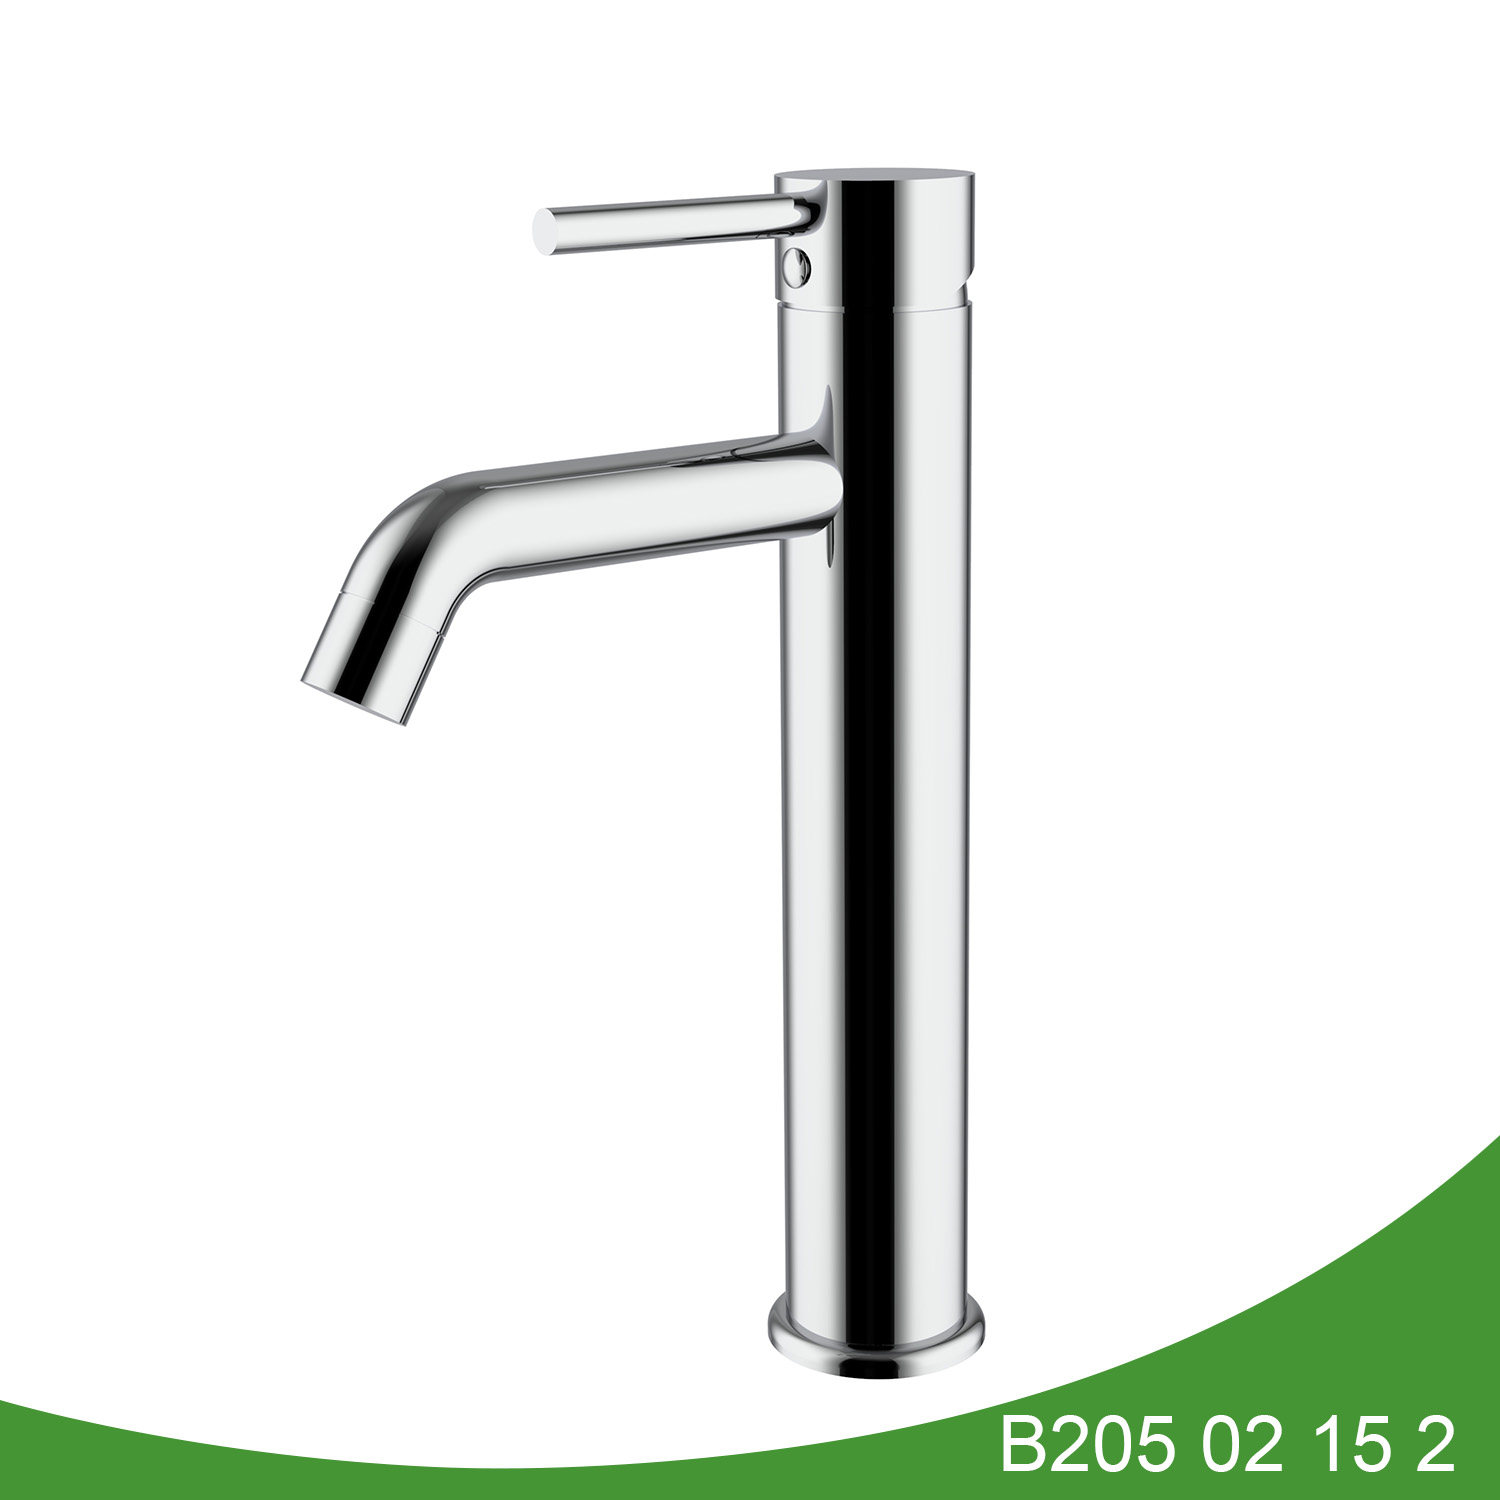 Single handle stainless steel tall basin faucet B205 02 16 2